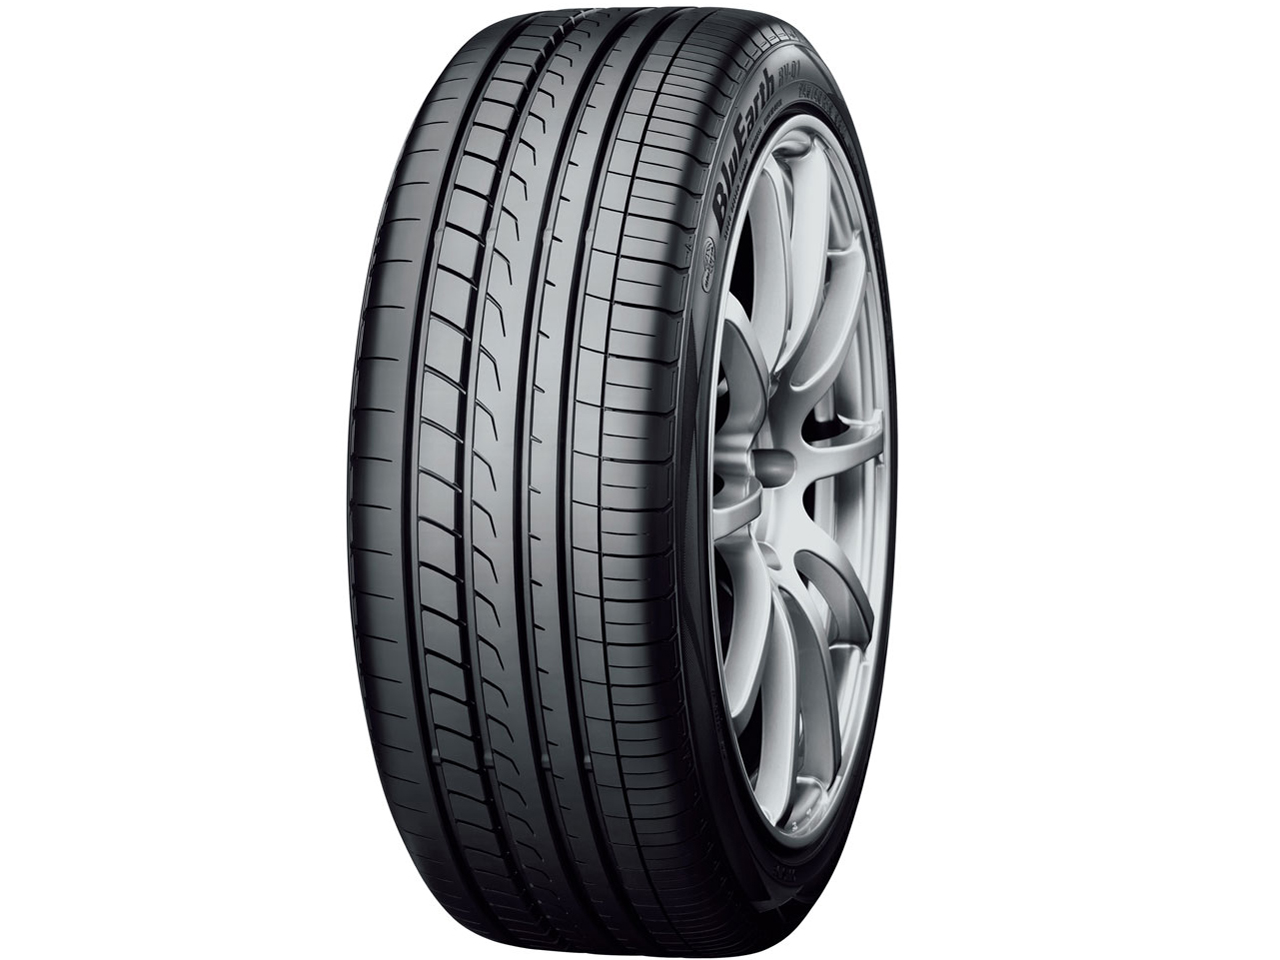 BluEarth RV-02 205/60R16 92H の製品画像